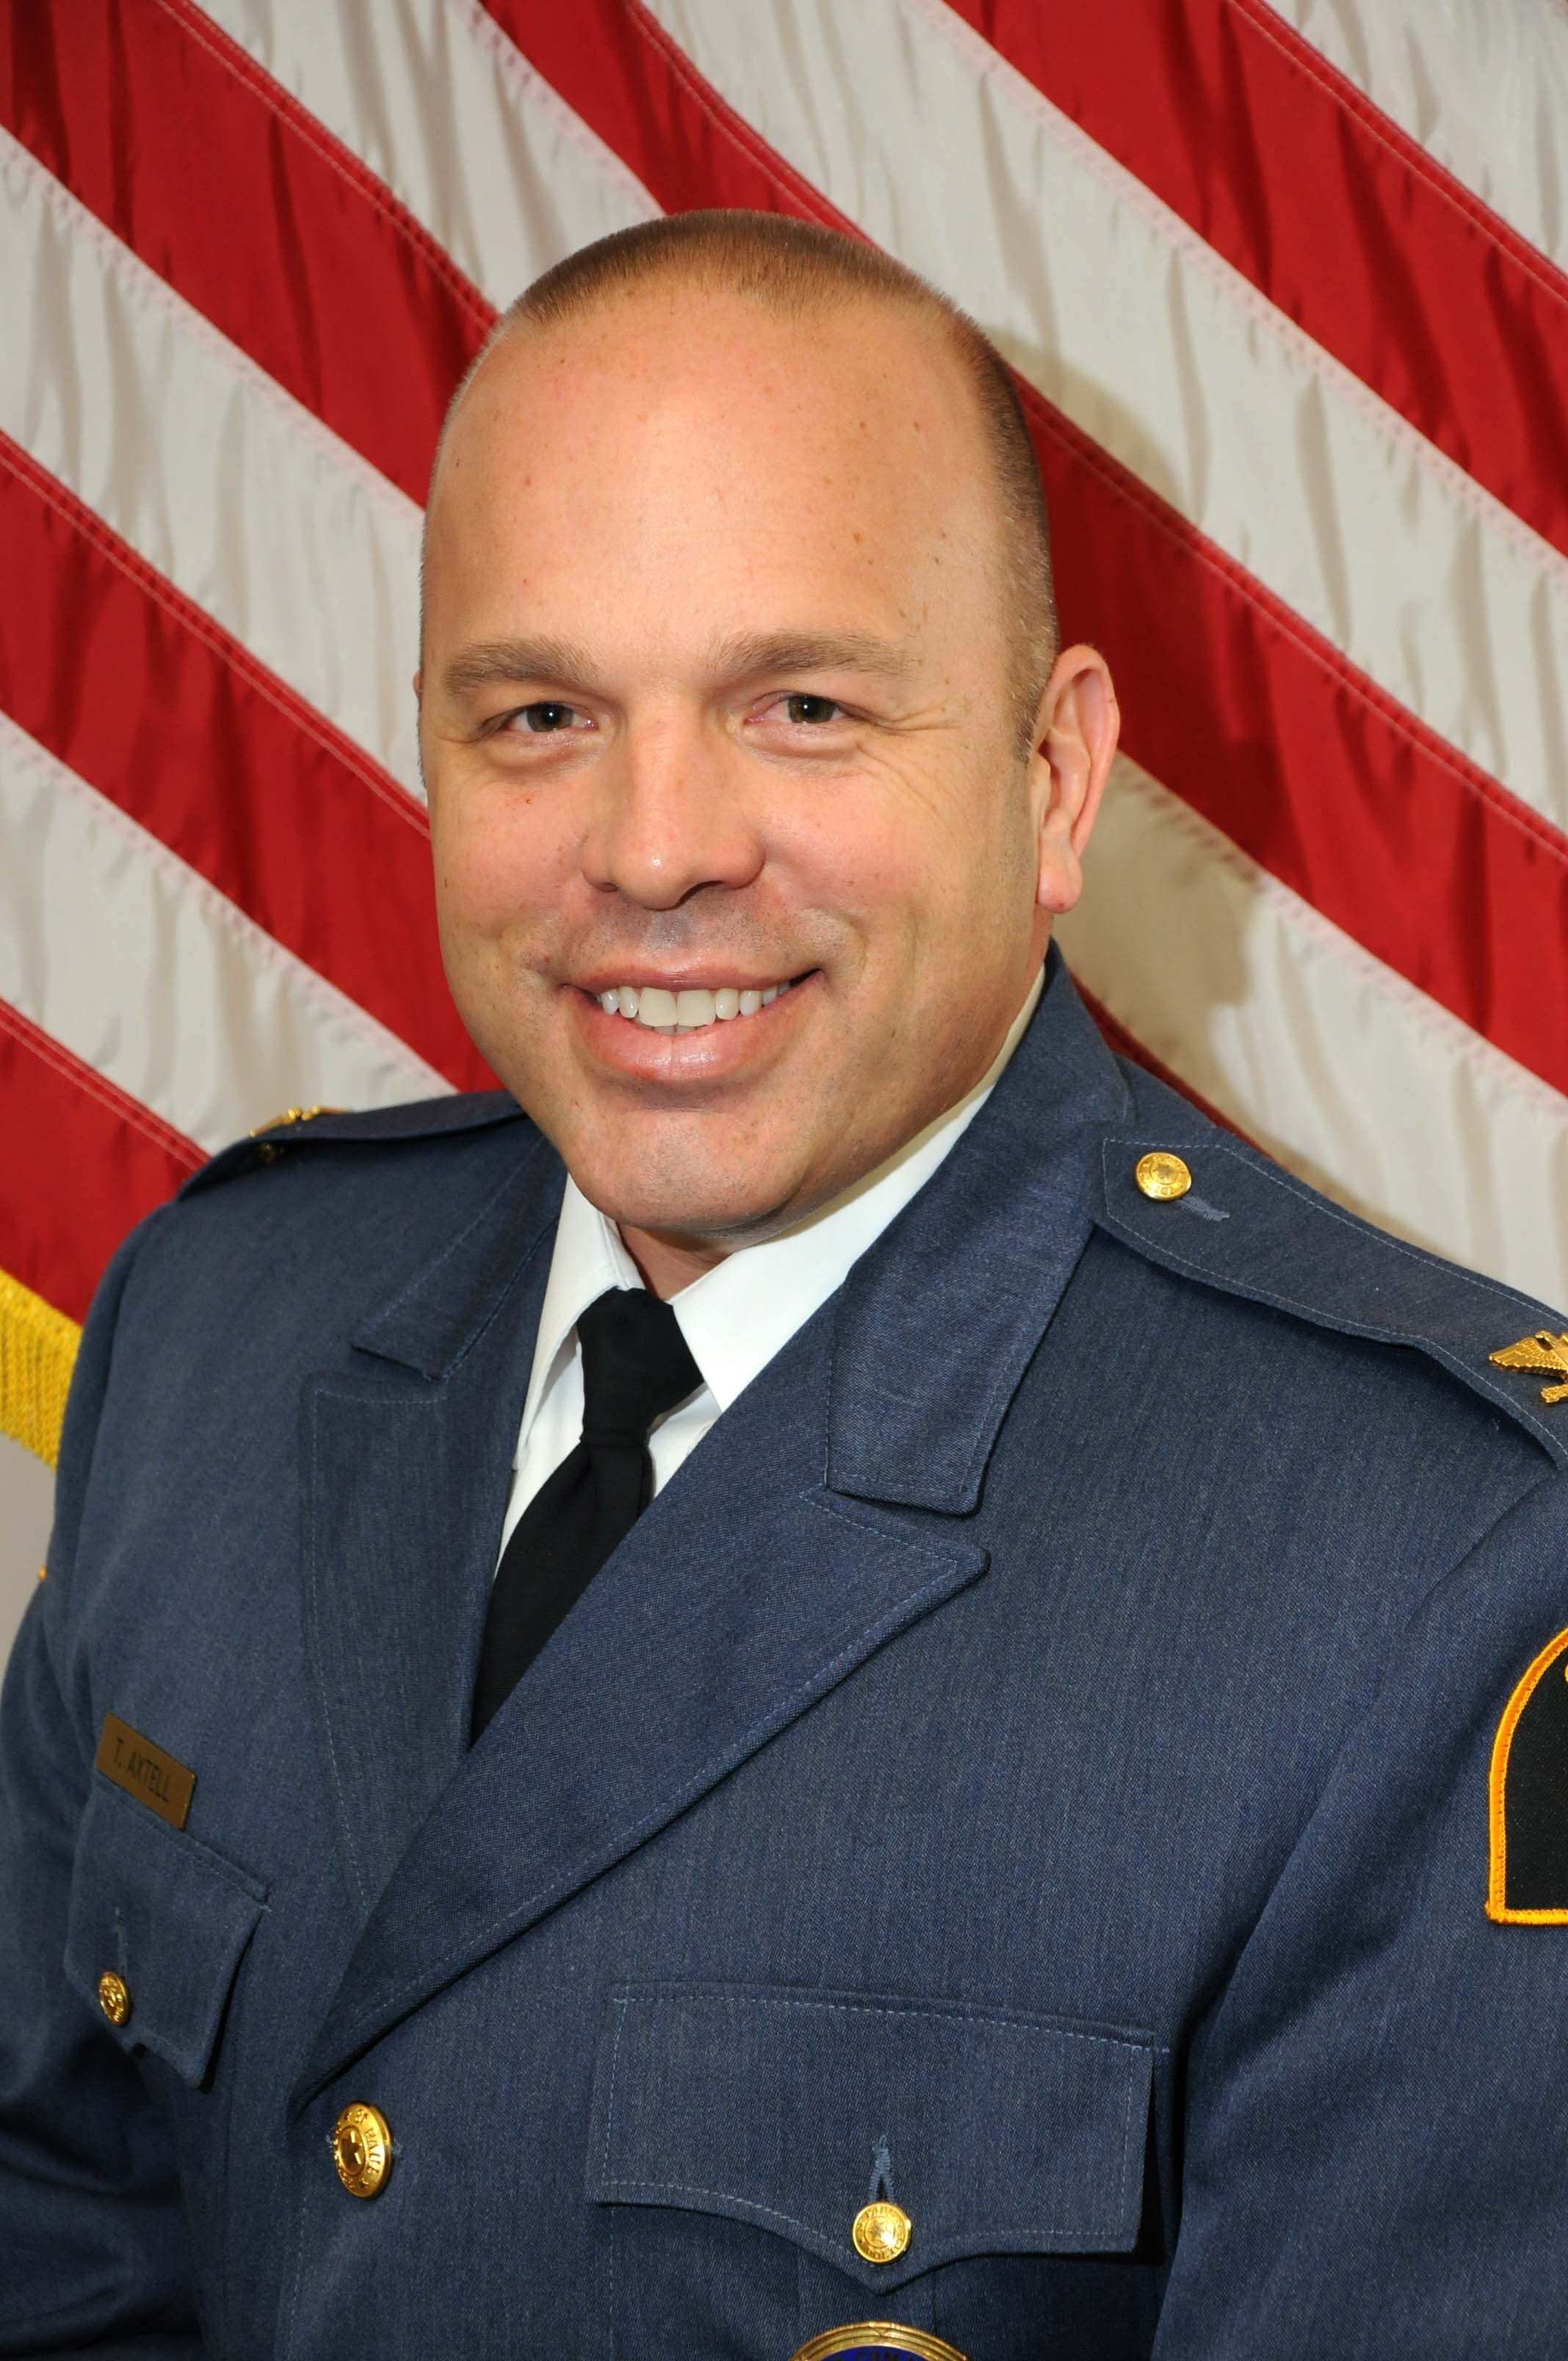 """Police Chief Defends His Department After Councilman Alleges """"Institutional Racism"""""""